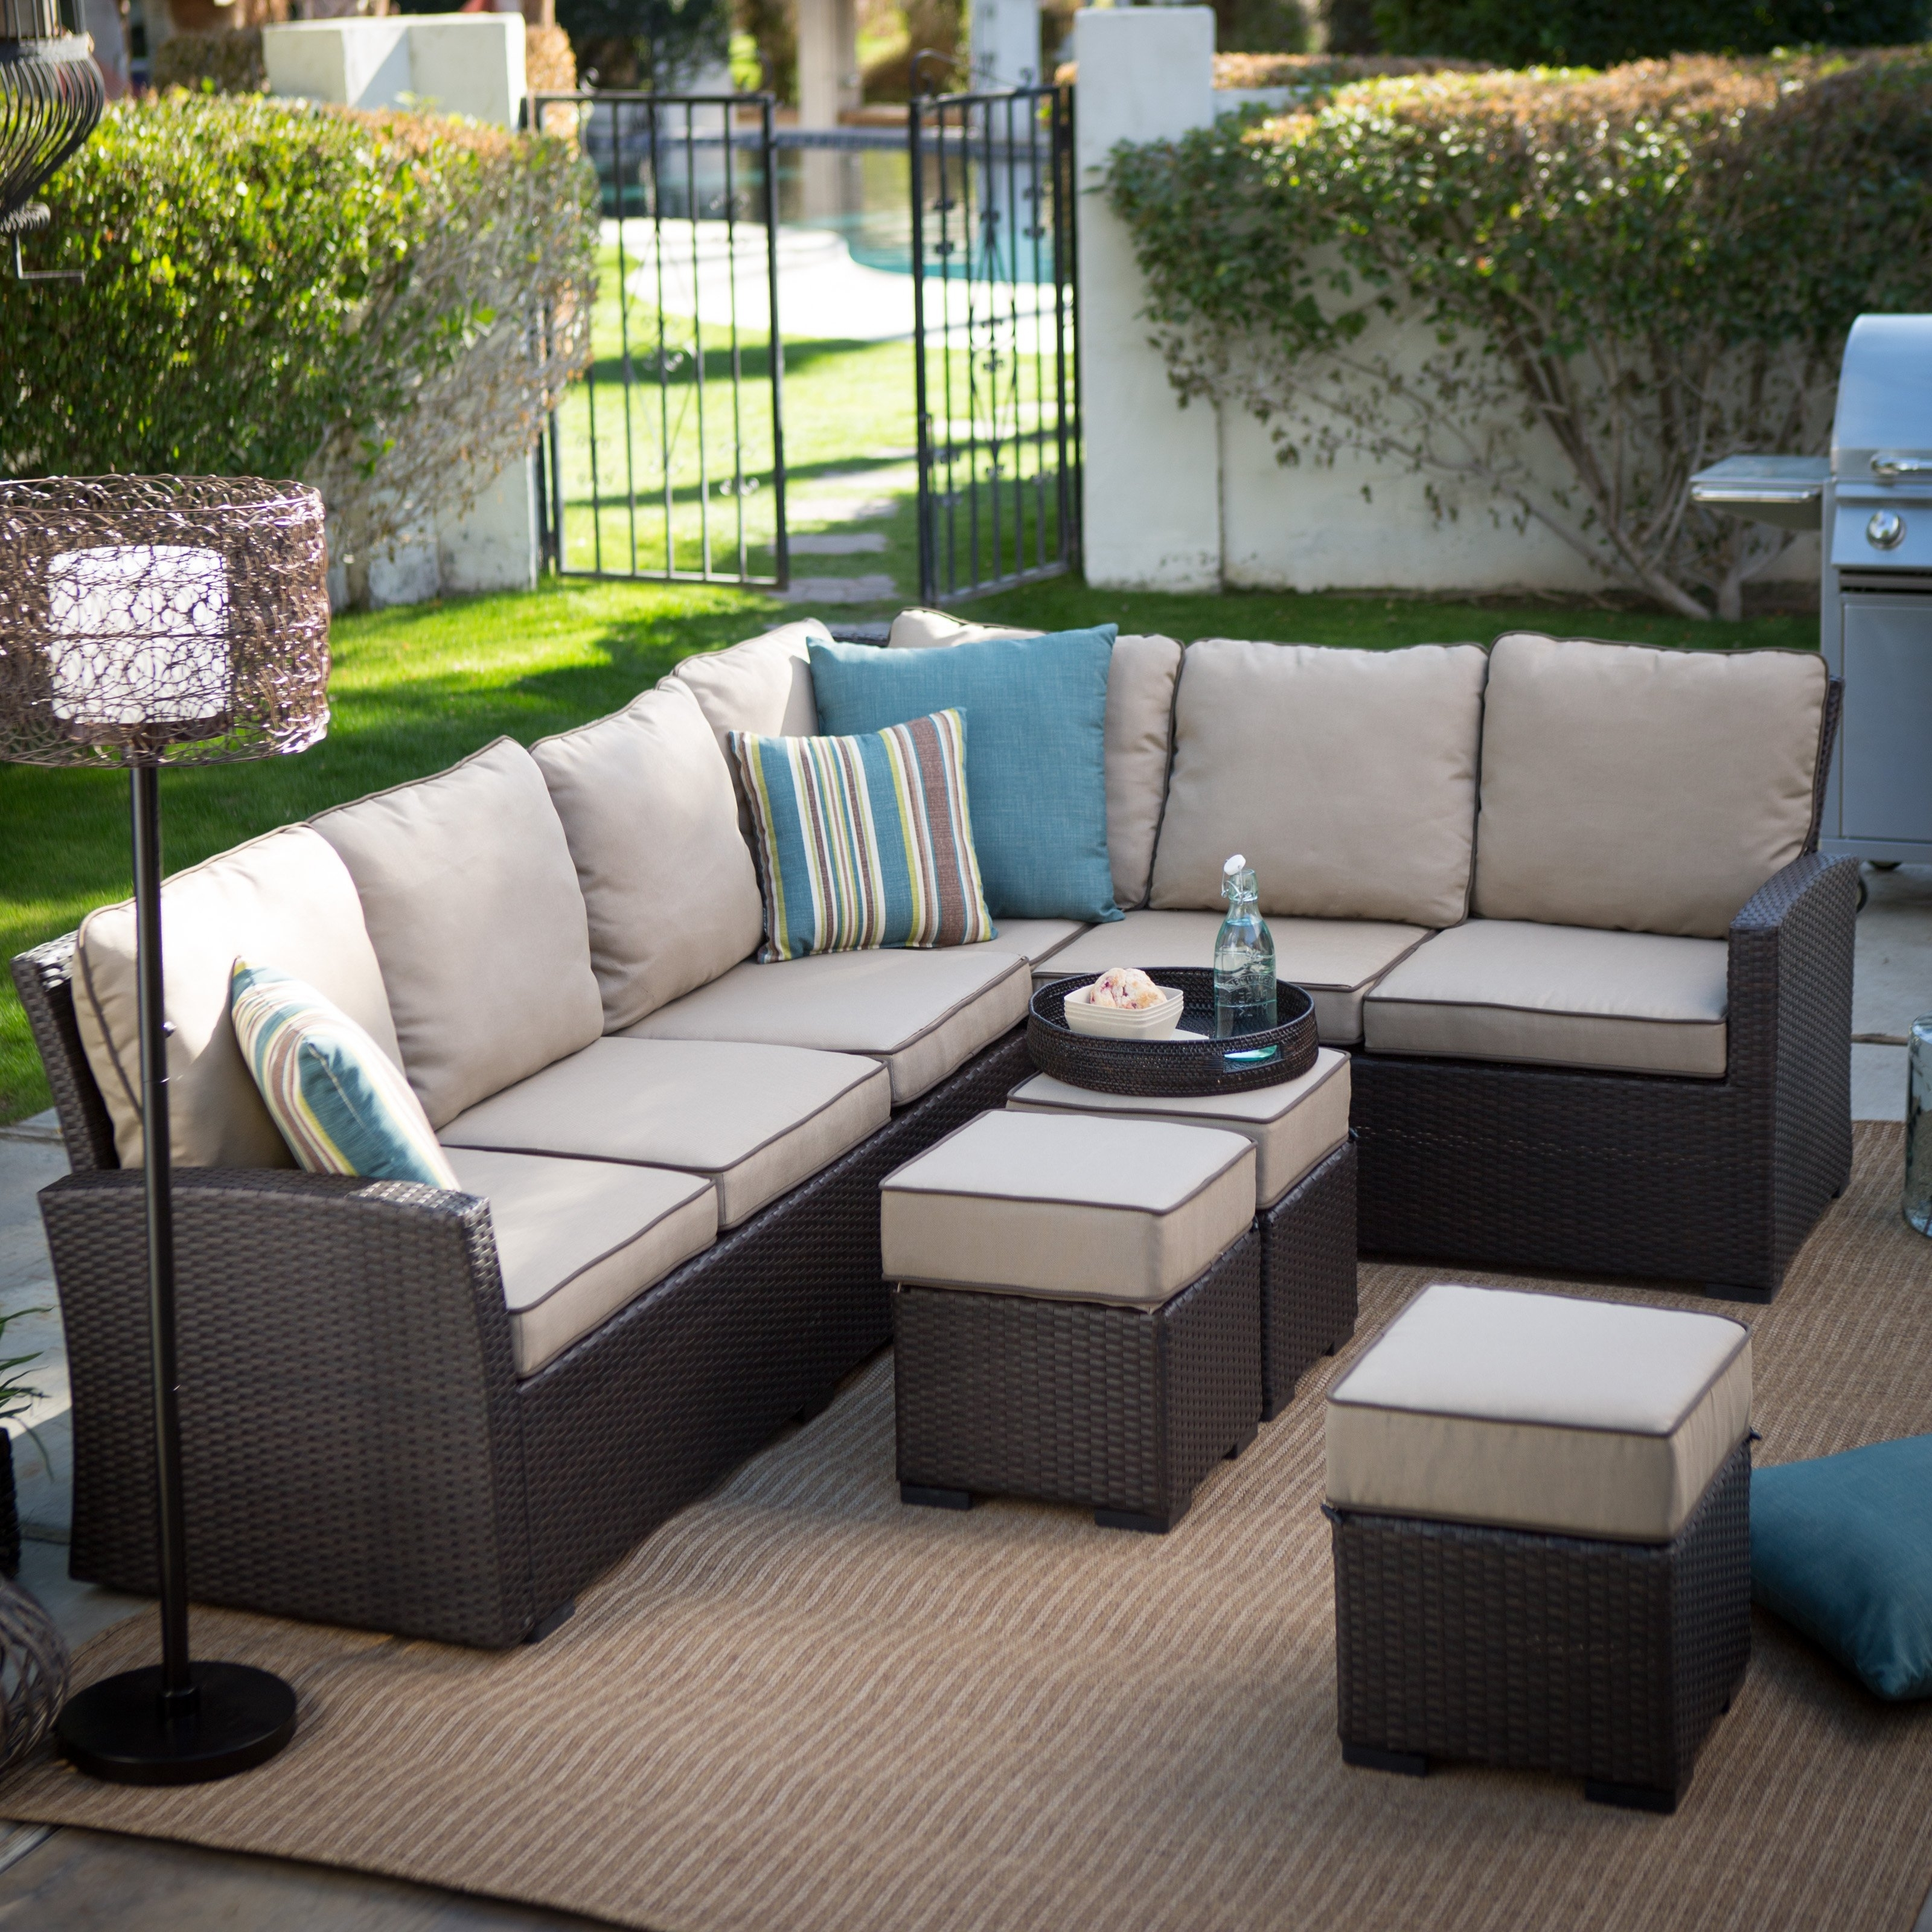 Popular Patio Sectional Conversation Sets With Regard To Belham Living Monticello All Weather Outdoor Wicker Sofa Sectional (View 12 of 15)